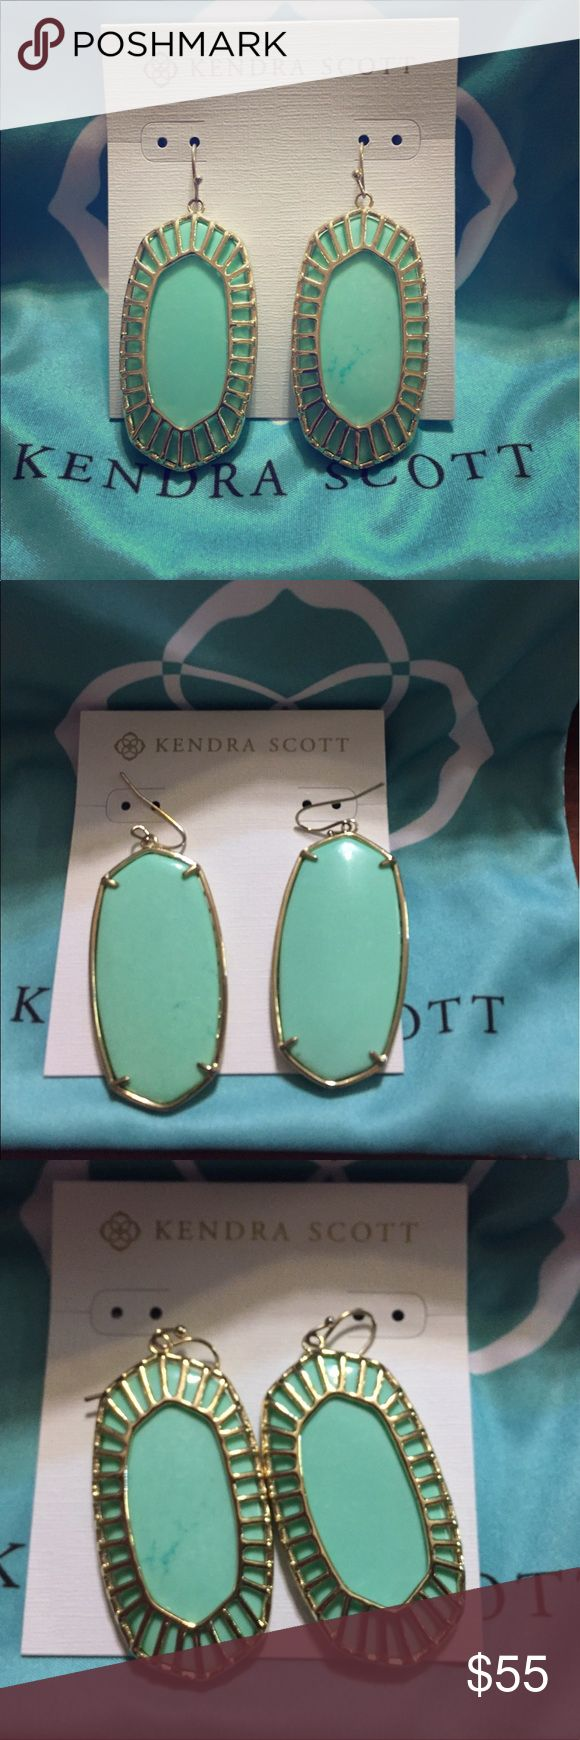 Kendra Scott Mint Earrings Kendra Scott oblong mint earrings. Mint and gold. Worn a few times, but they're just too heavy for me. Danielle size. Was purchased on Posh. EUC. Open for reasonable offers. Comes with dust bag, no backs. Kendra Scott Jewelry Earrings